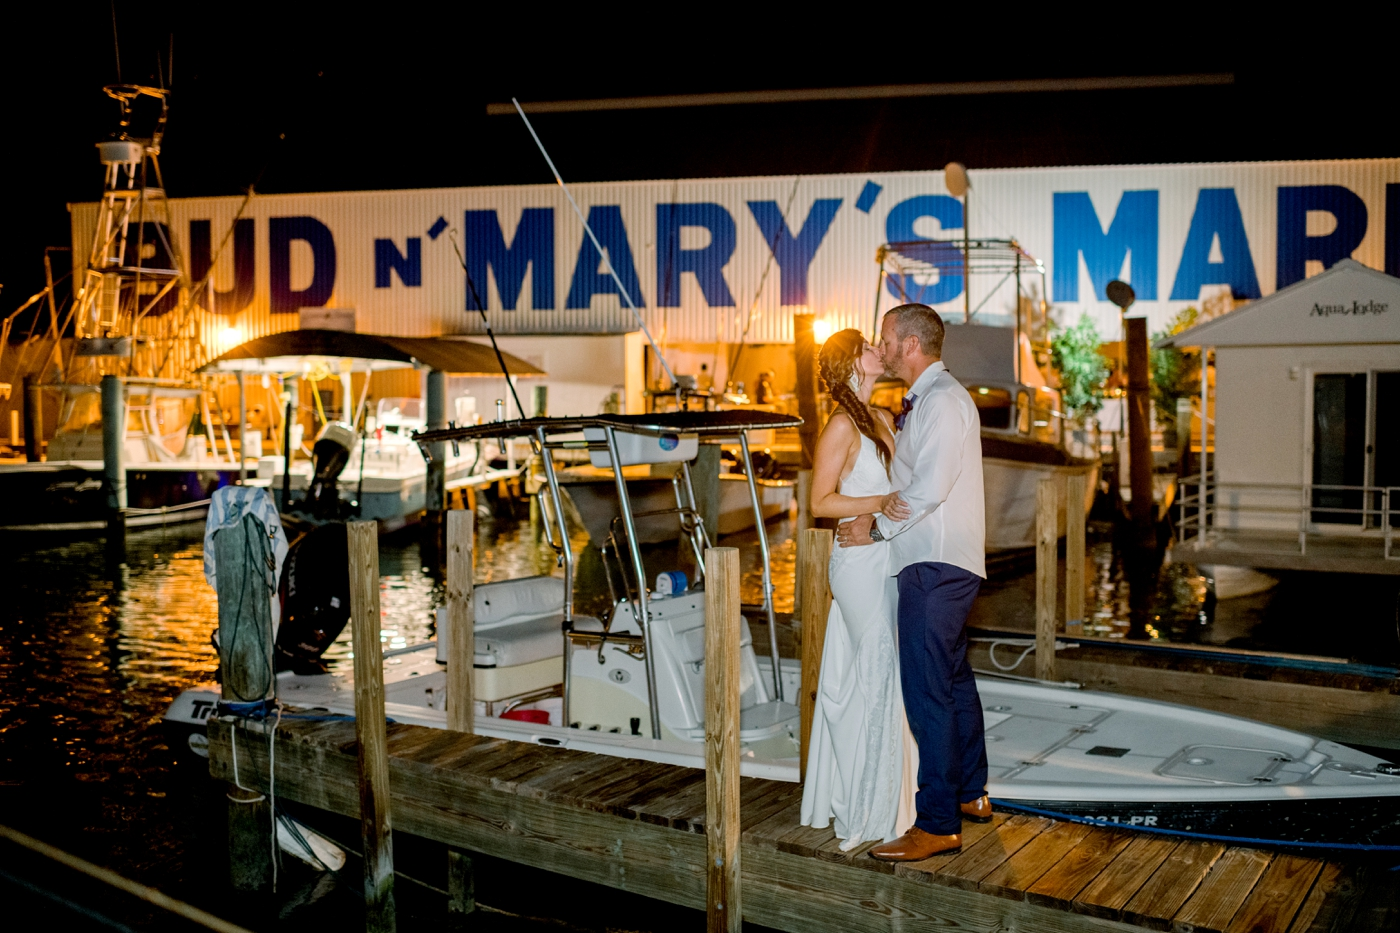 bud n mary's marina wedding